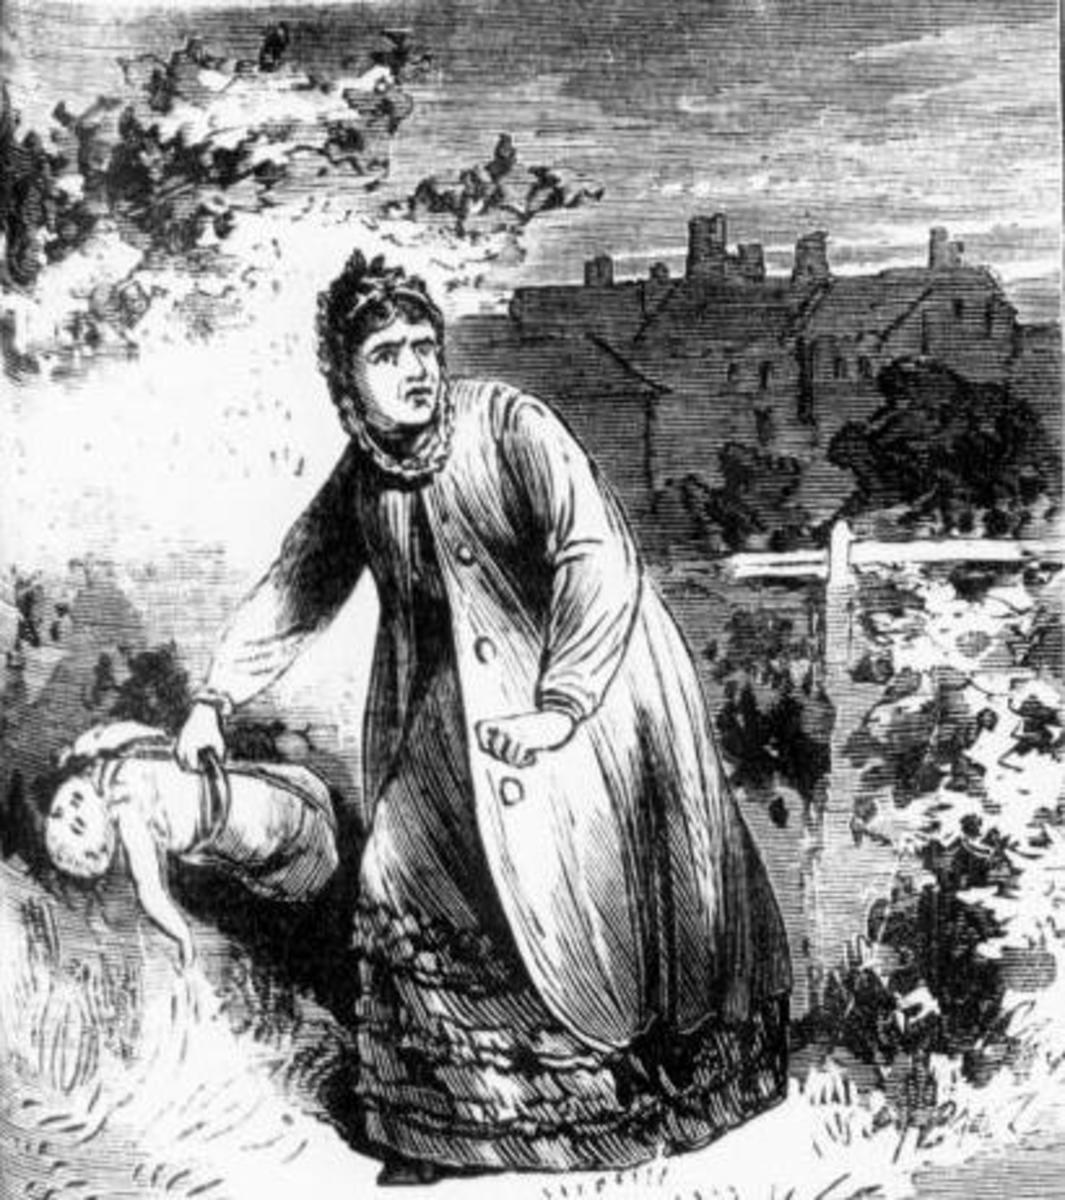 Margaret Waters is depicted by the Illustrated Police News disposing of a child's body.